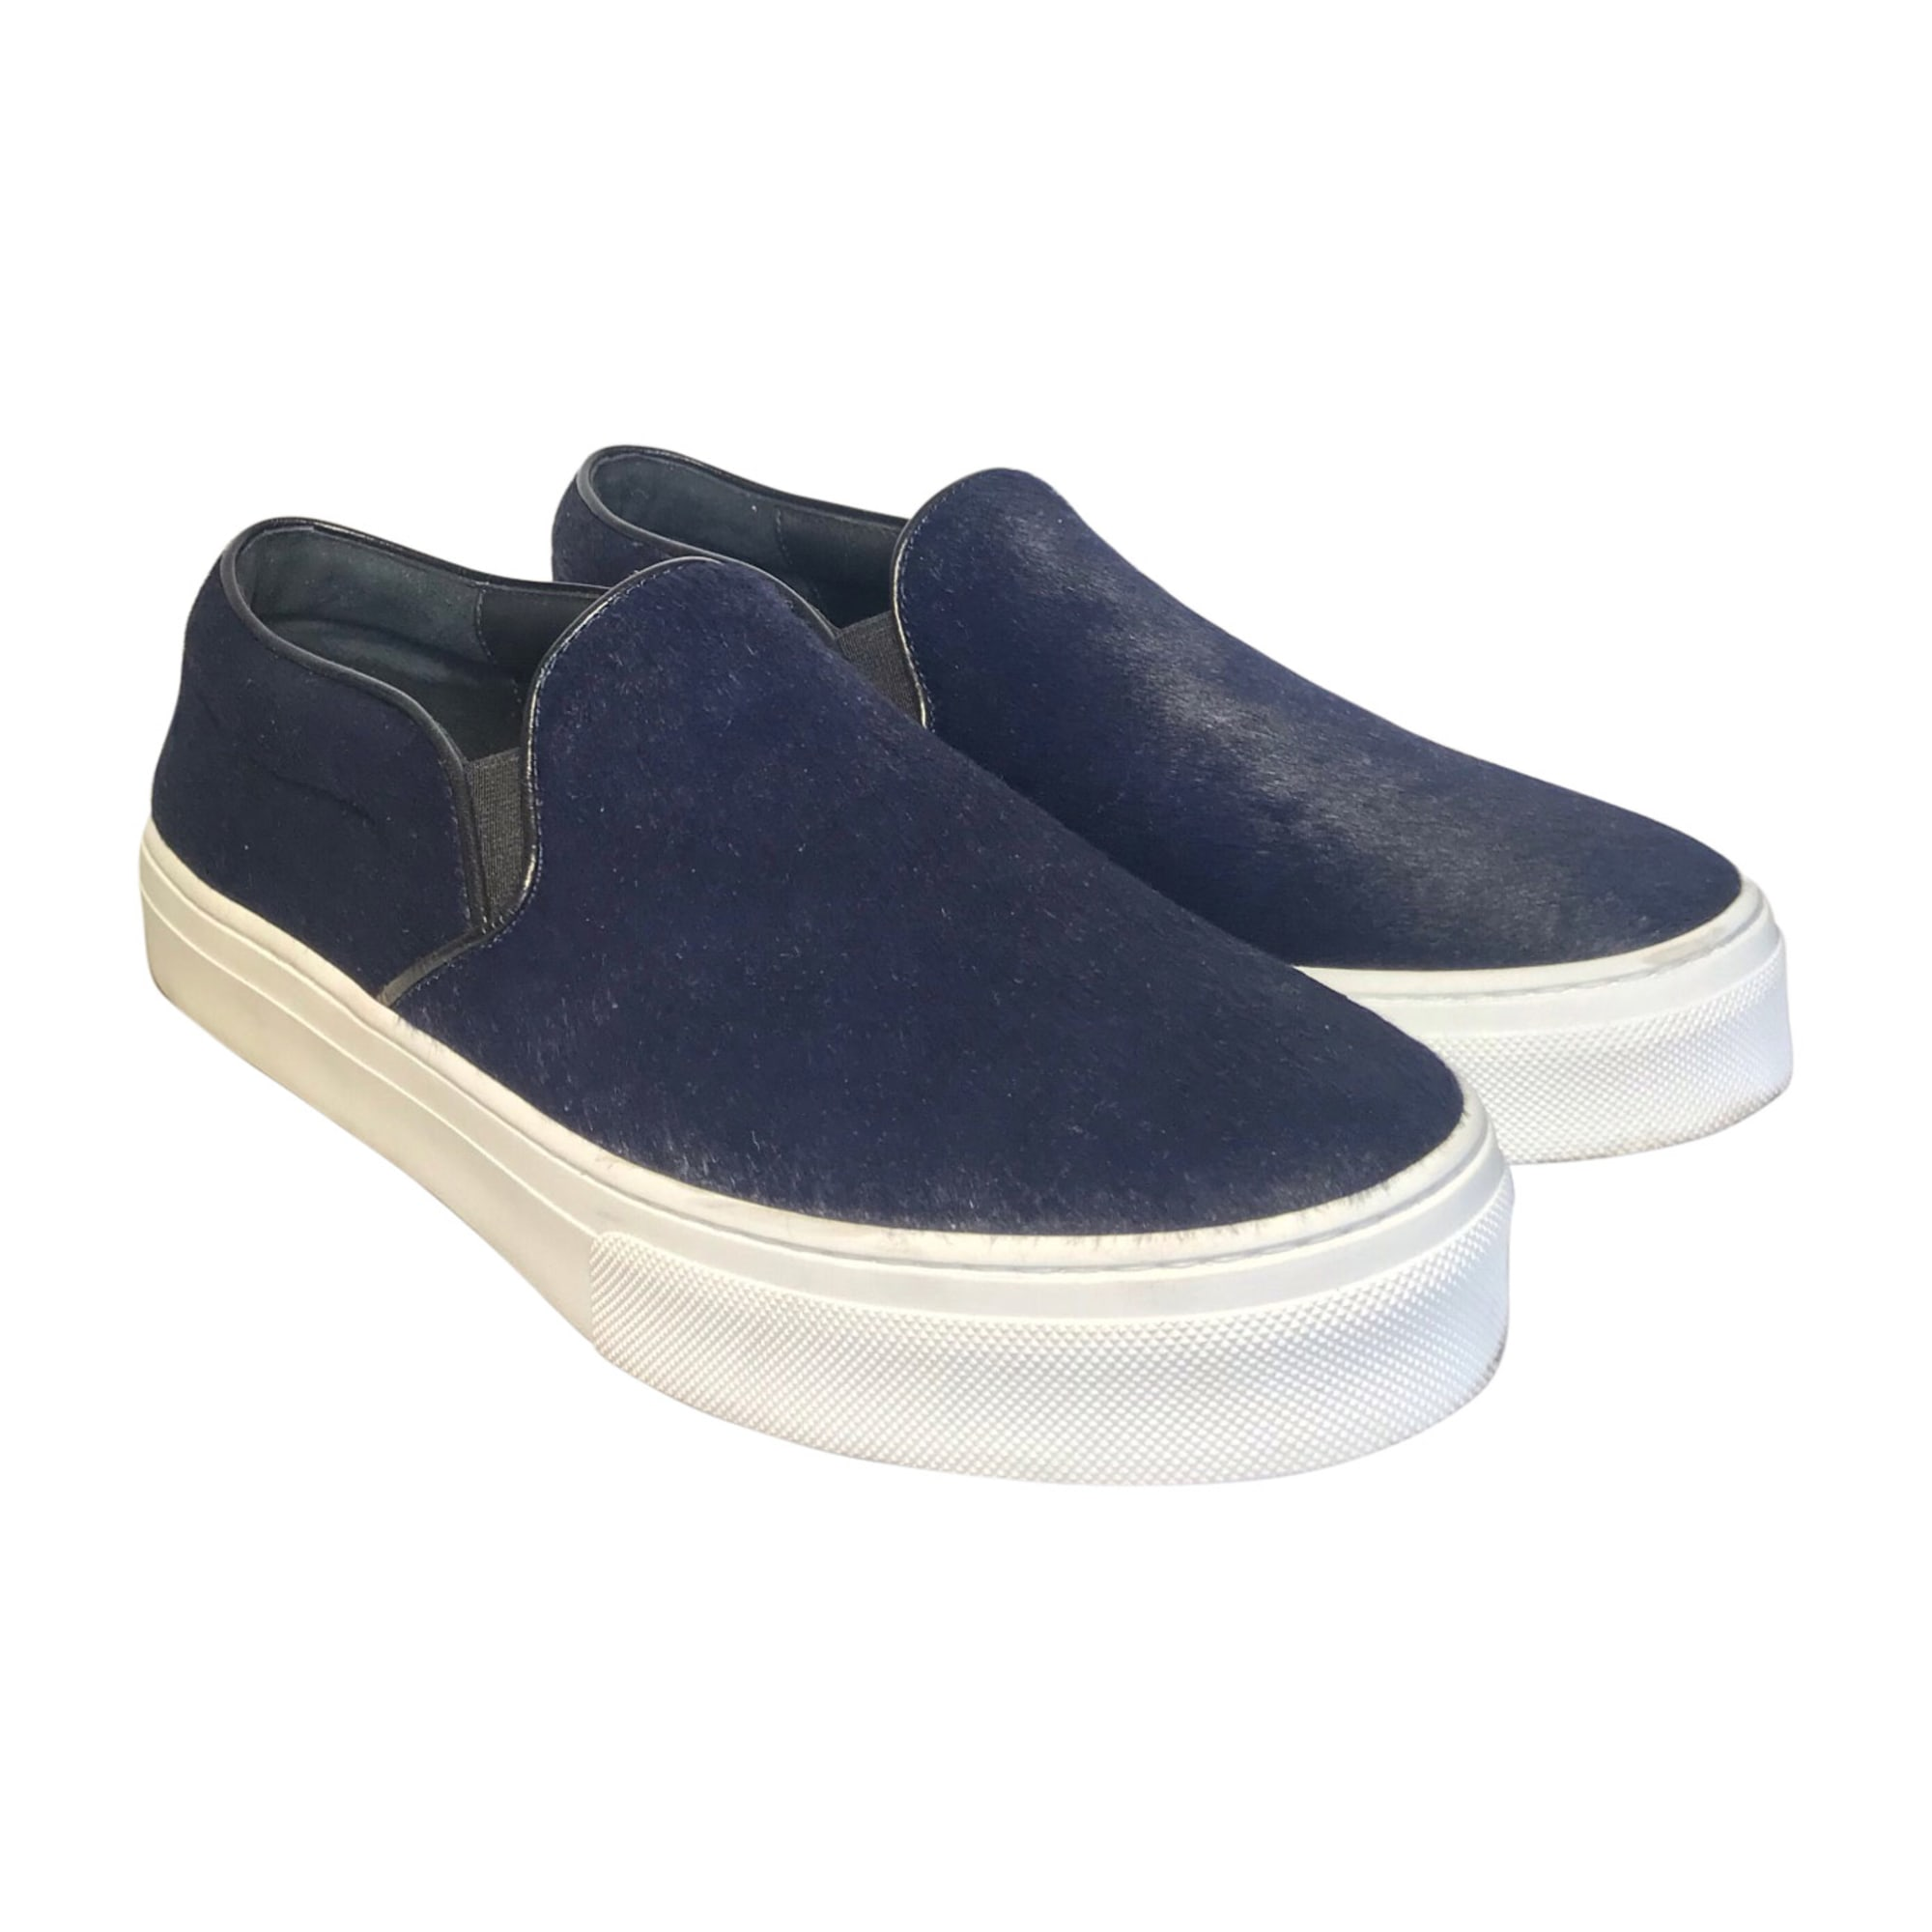 Sneakers CÉLINE Blue, navy, turquoise